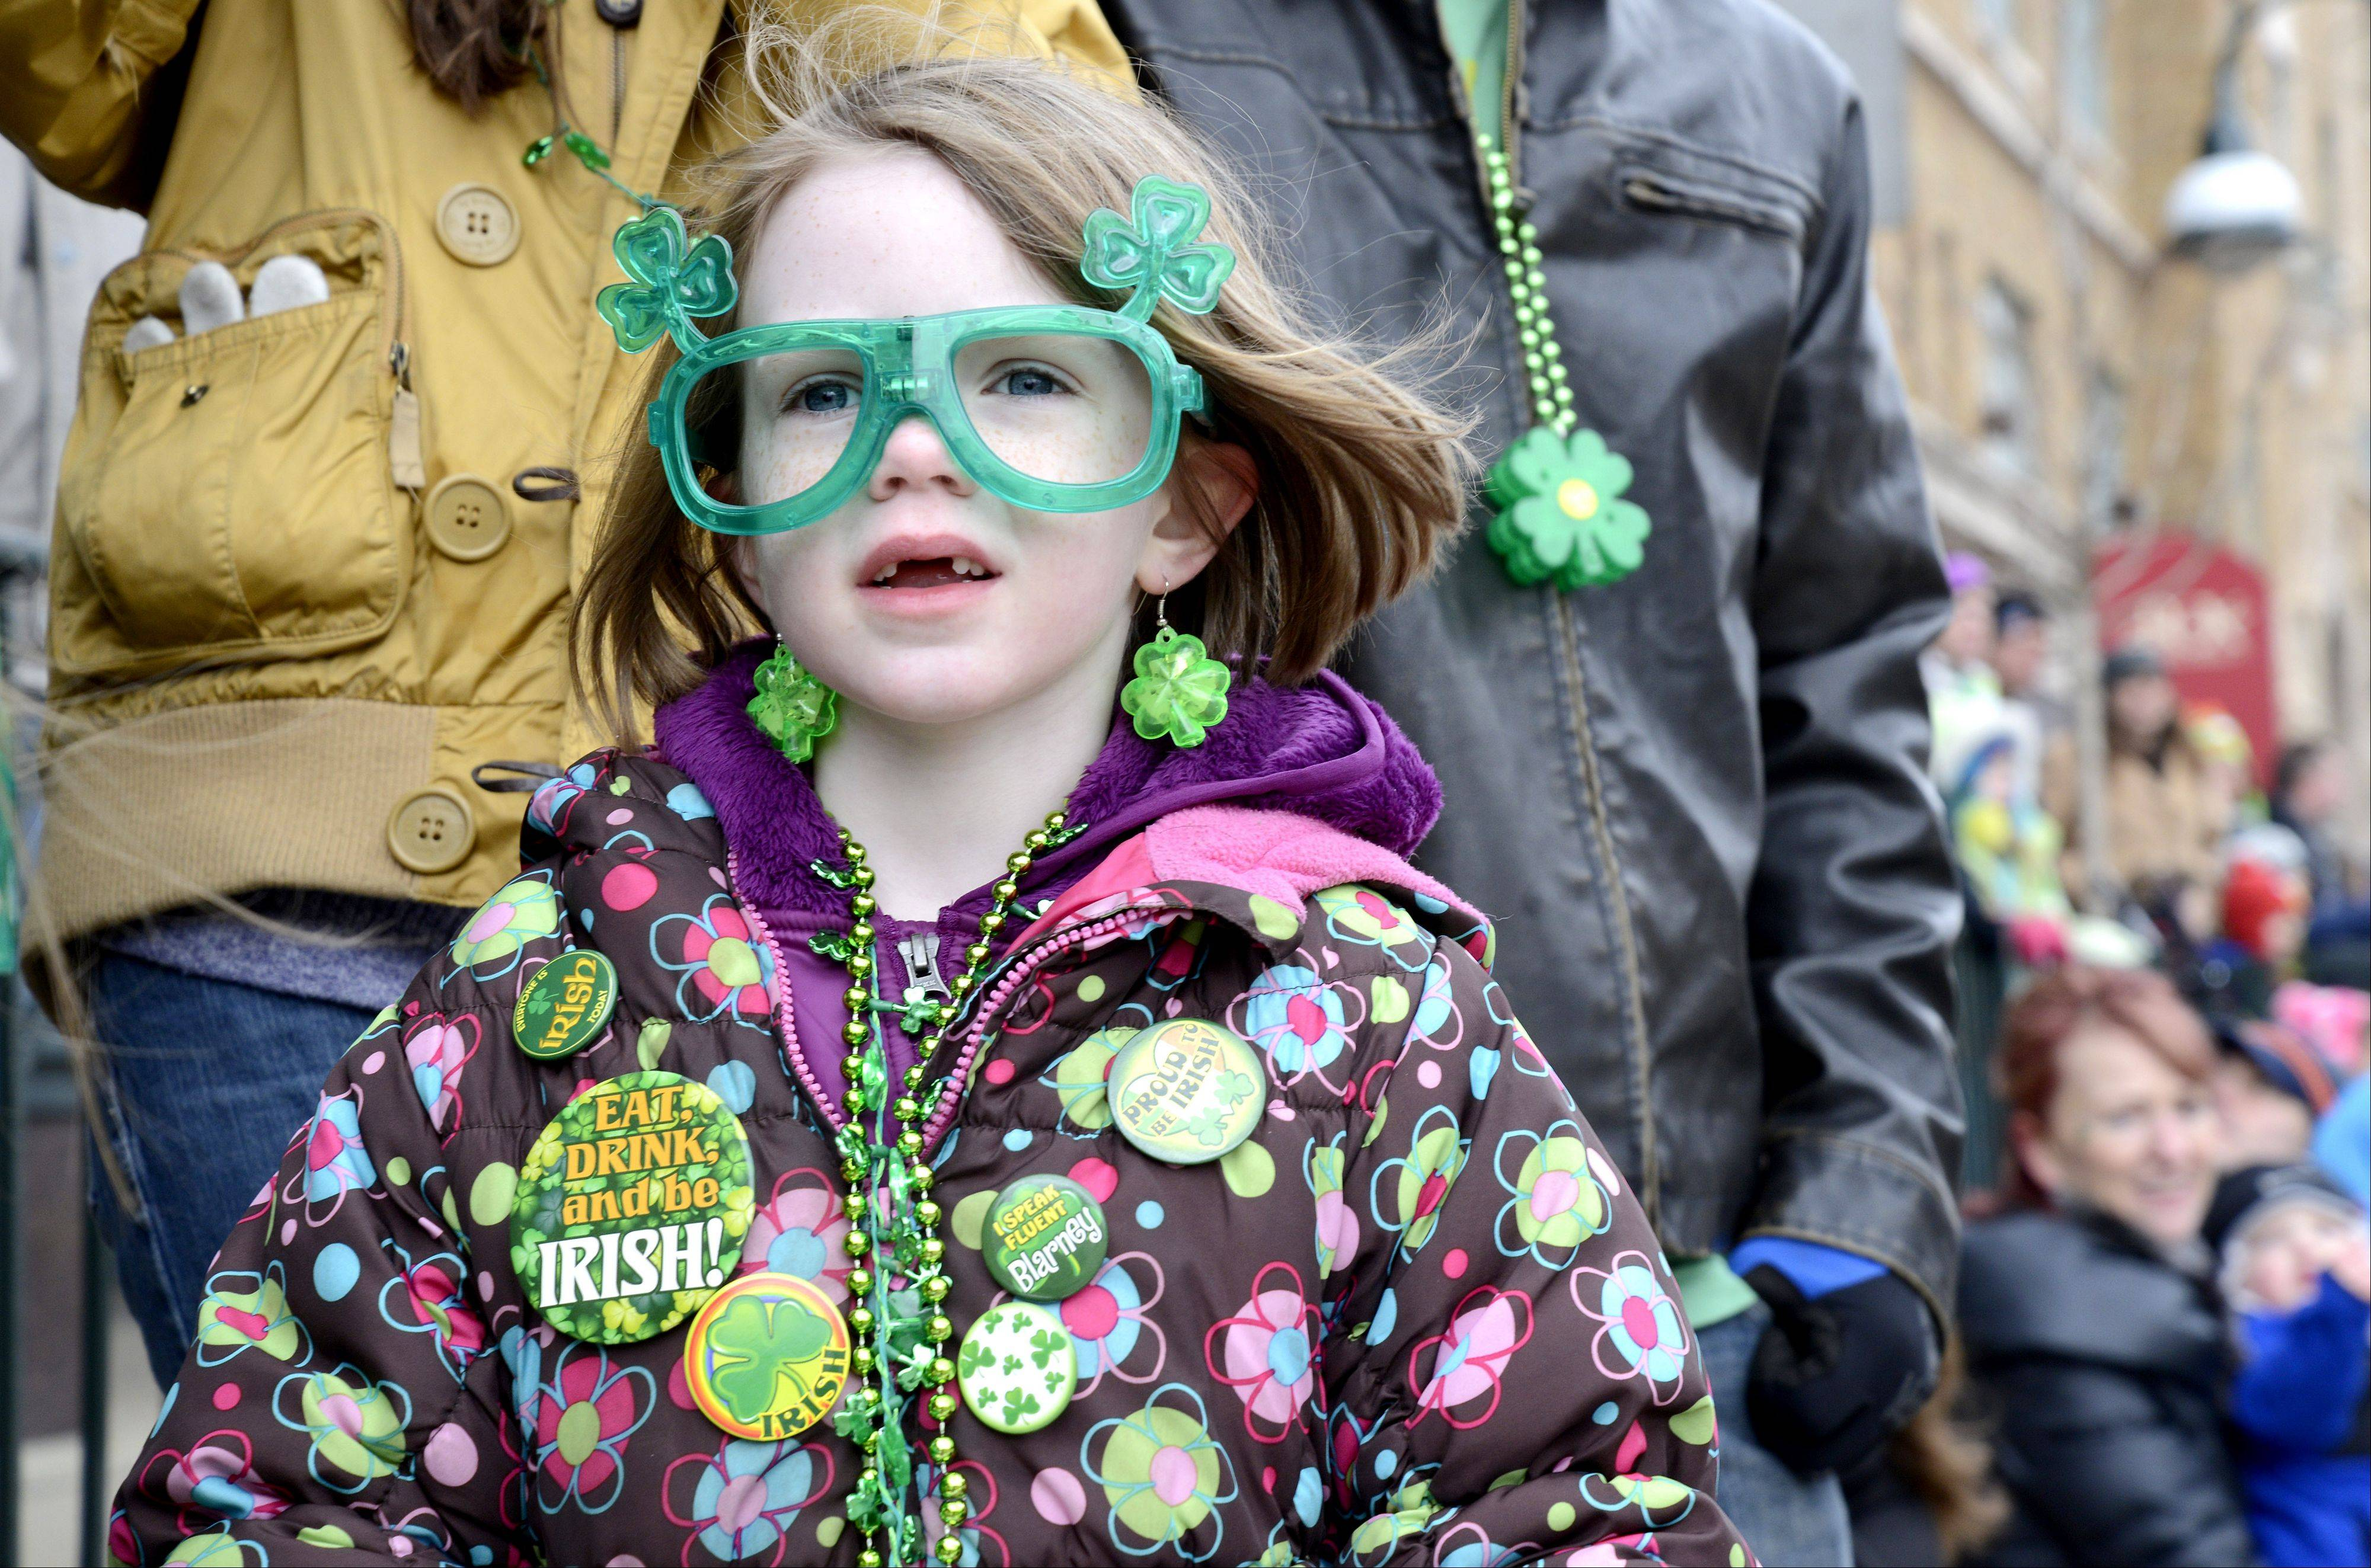 Shea Fink, 7, of Geneva watches the St. Patrick's Day parade in St. Charles on Saturday.